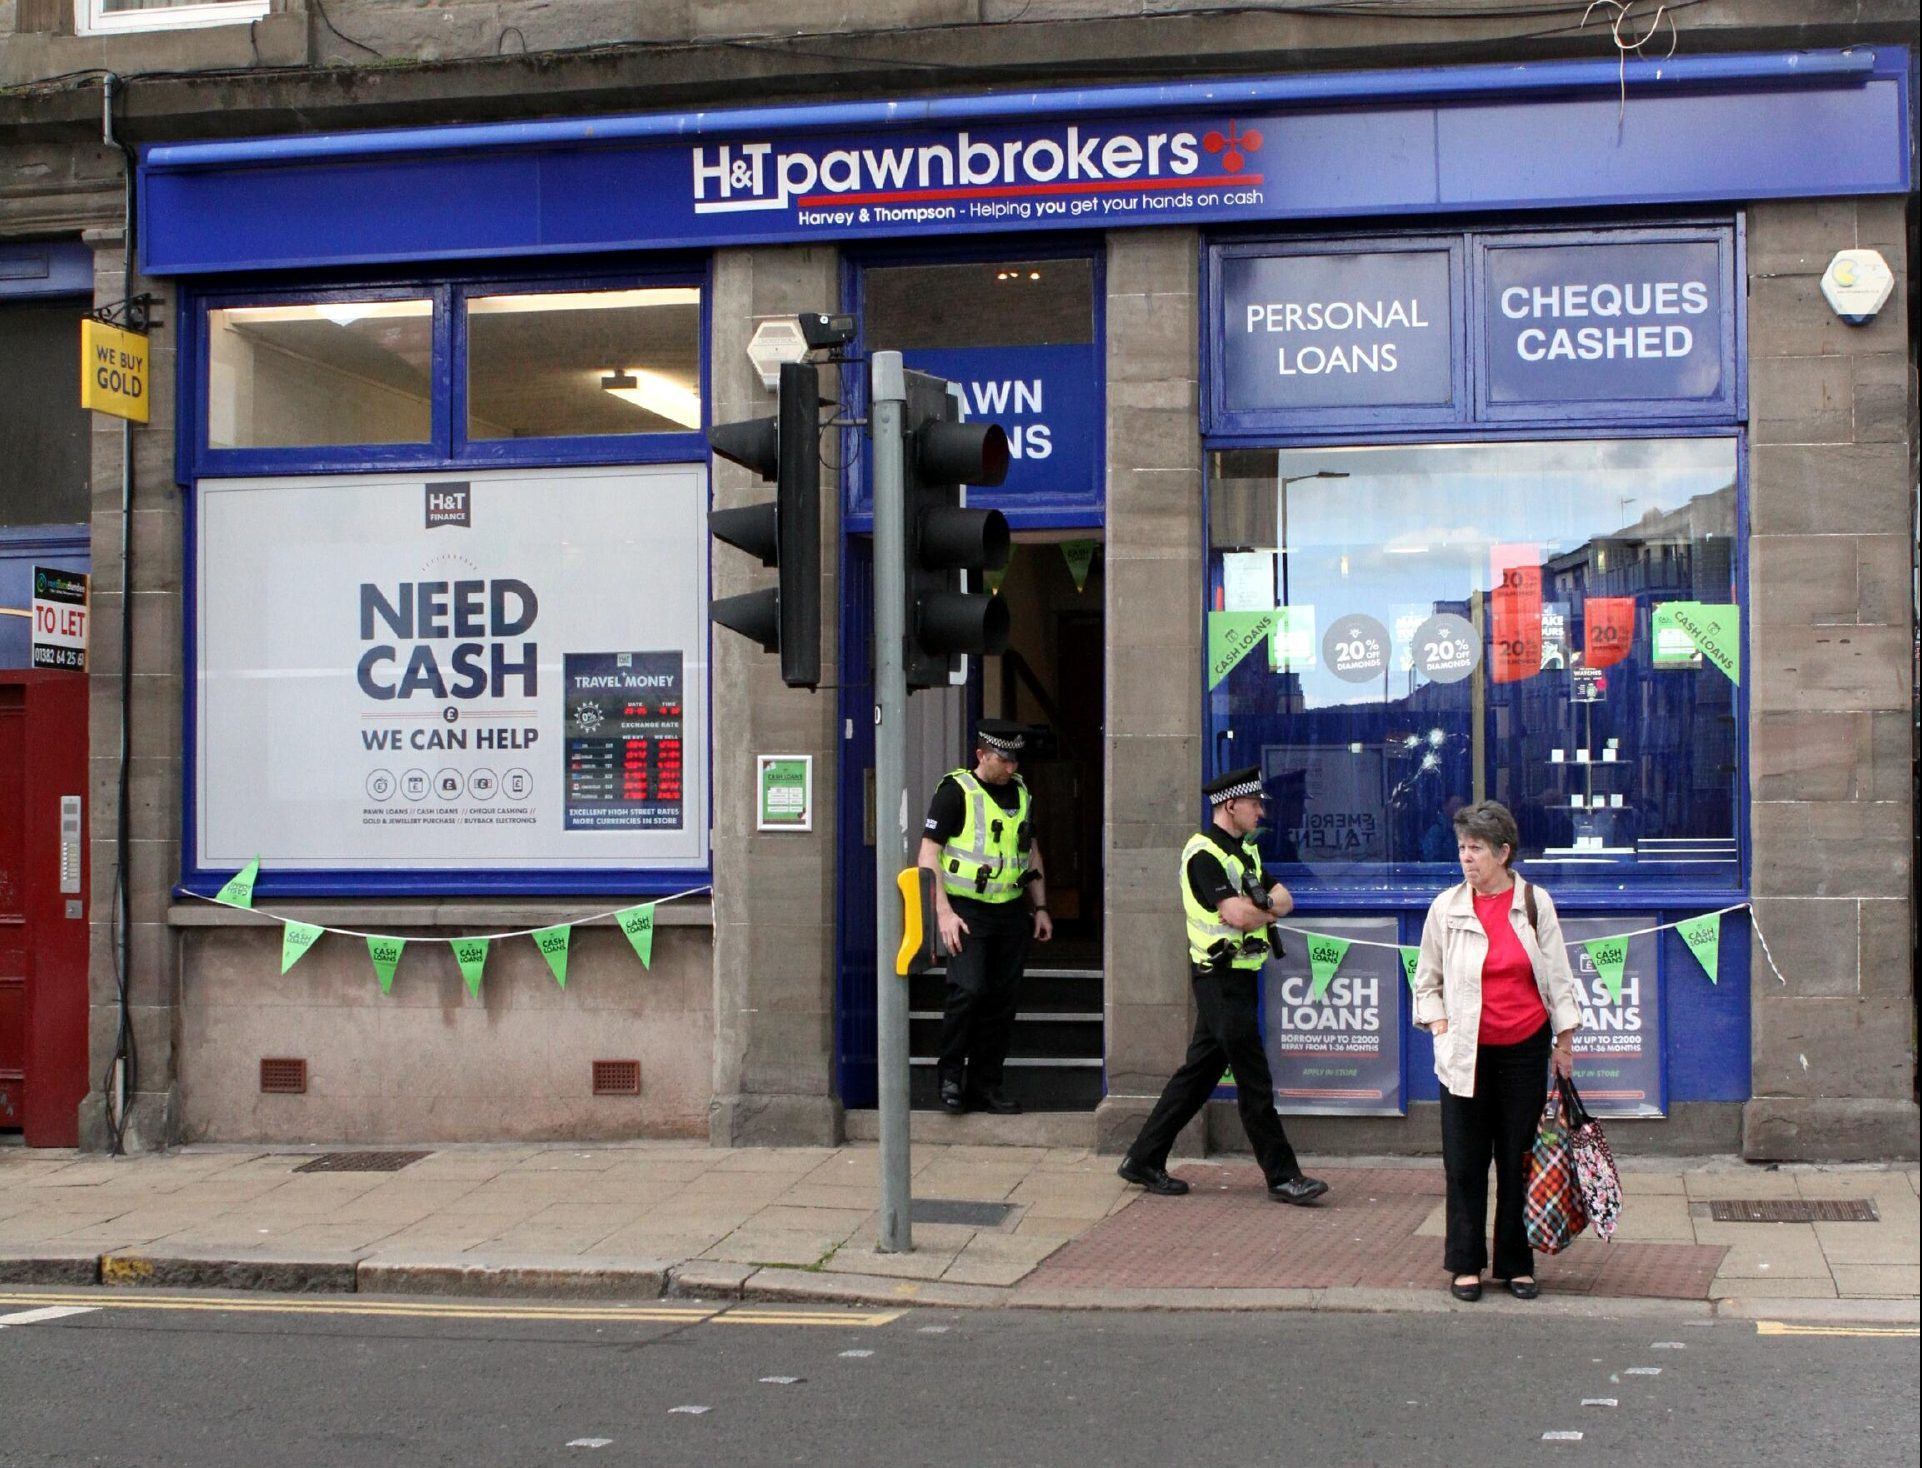 Police at the pawnbrokers.